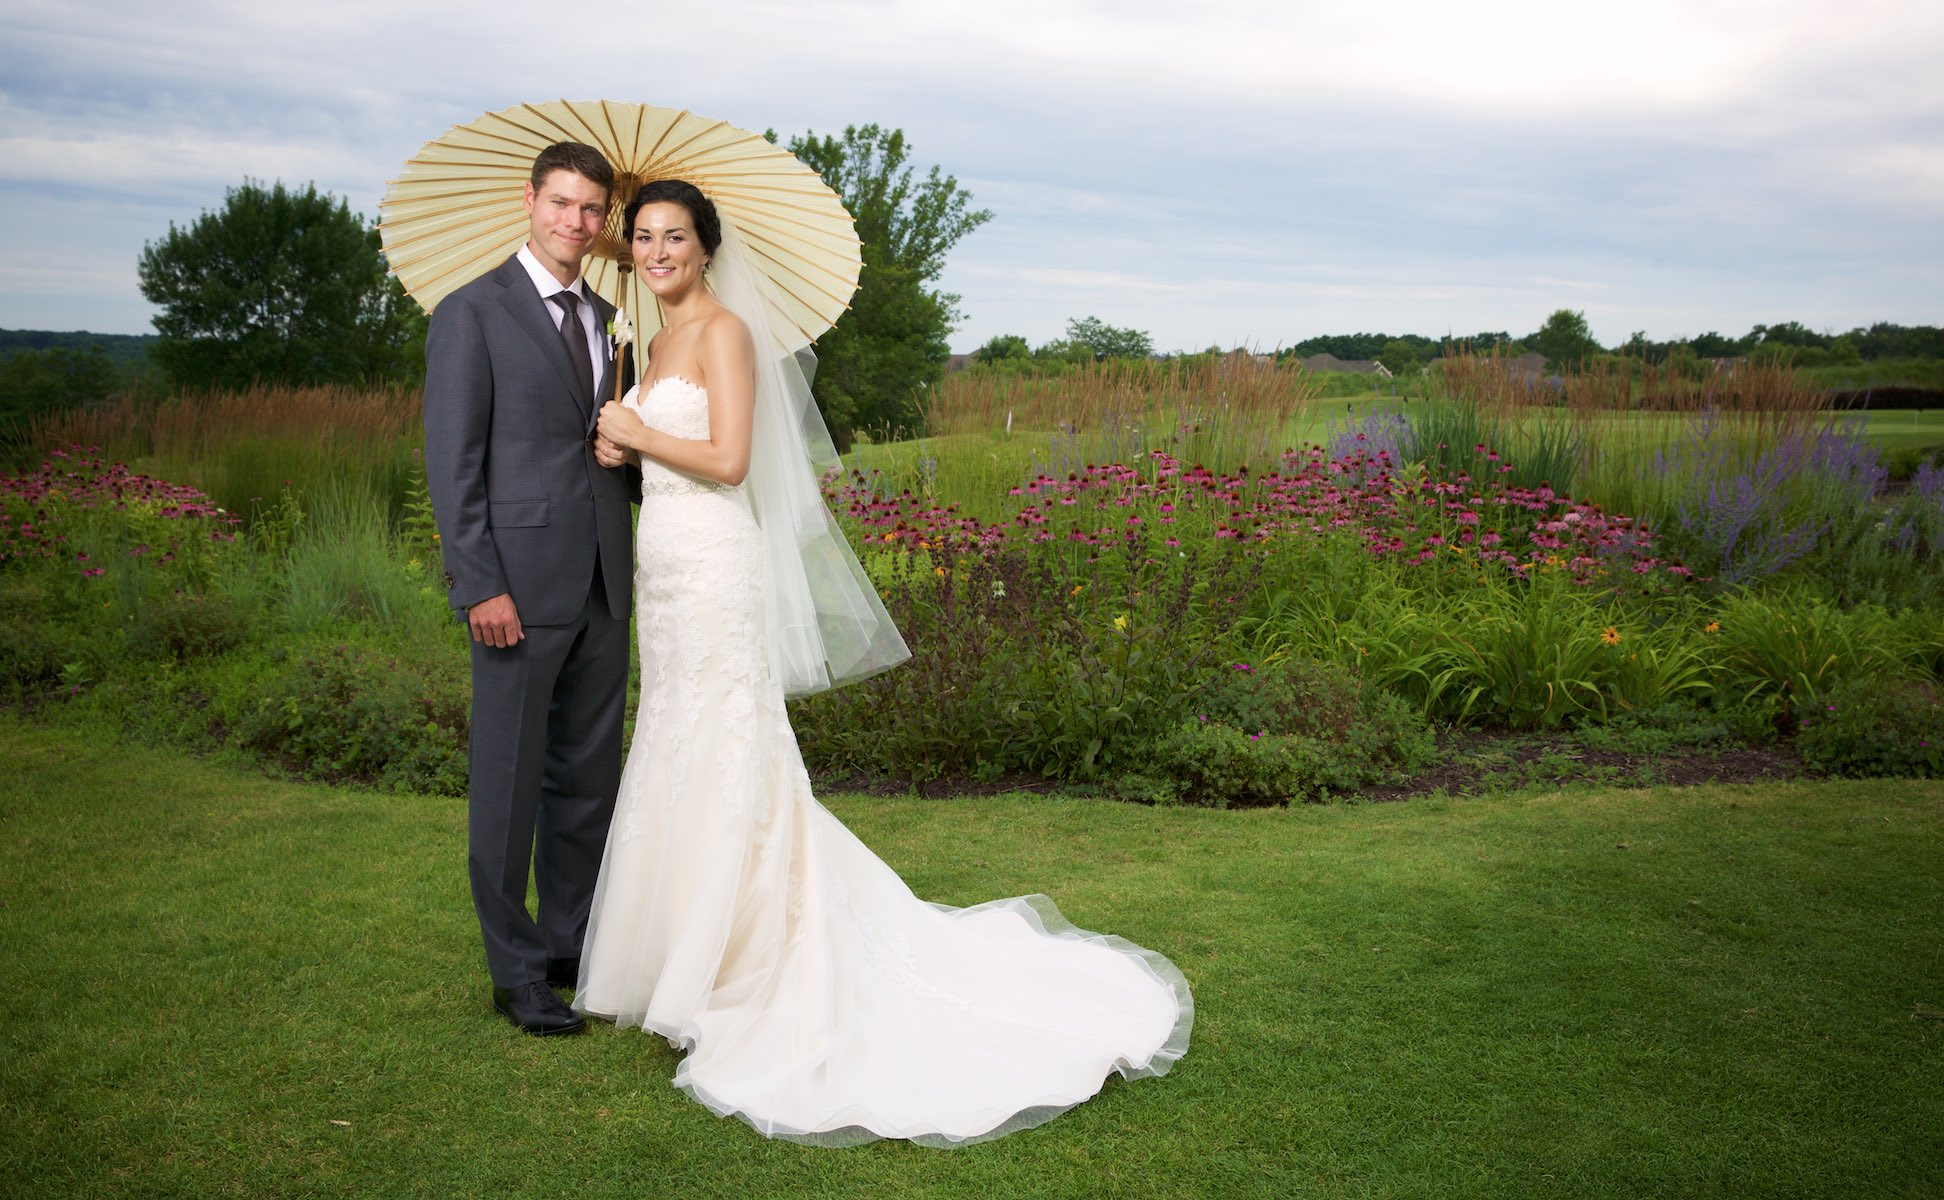 Outdoor portraits, Emi & Daniel's wedding at Geneva National Golf Club in Lake Geneva, Wisconsin. Wedding photography by Steve & Tiffany Warmowski.